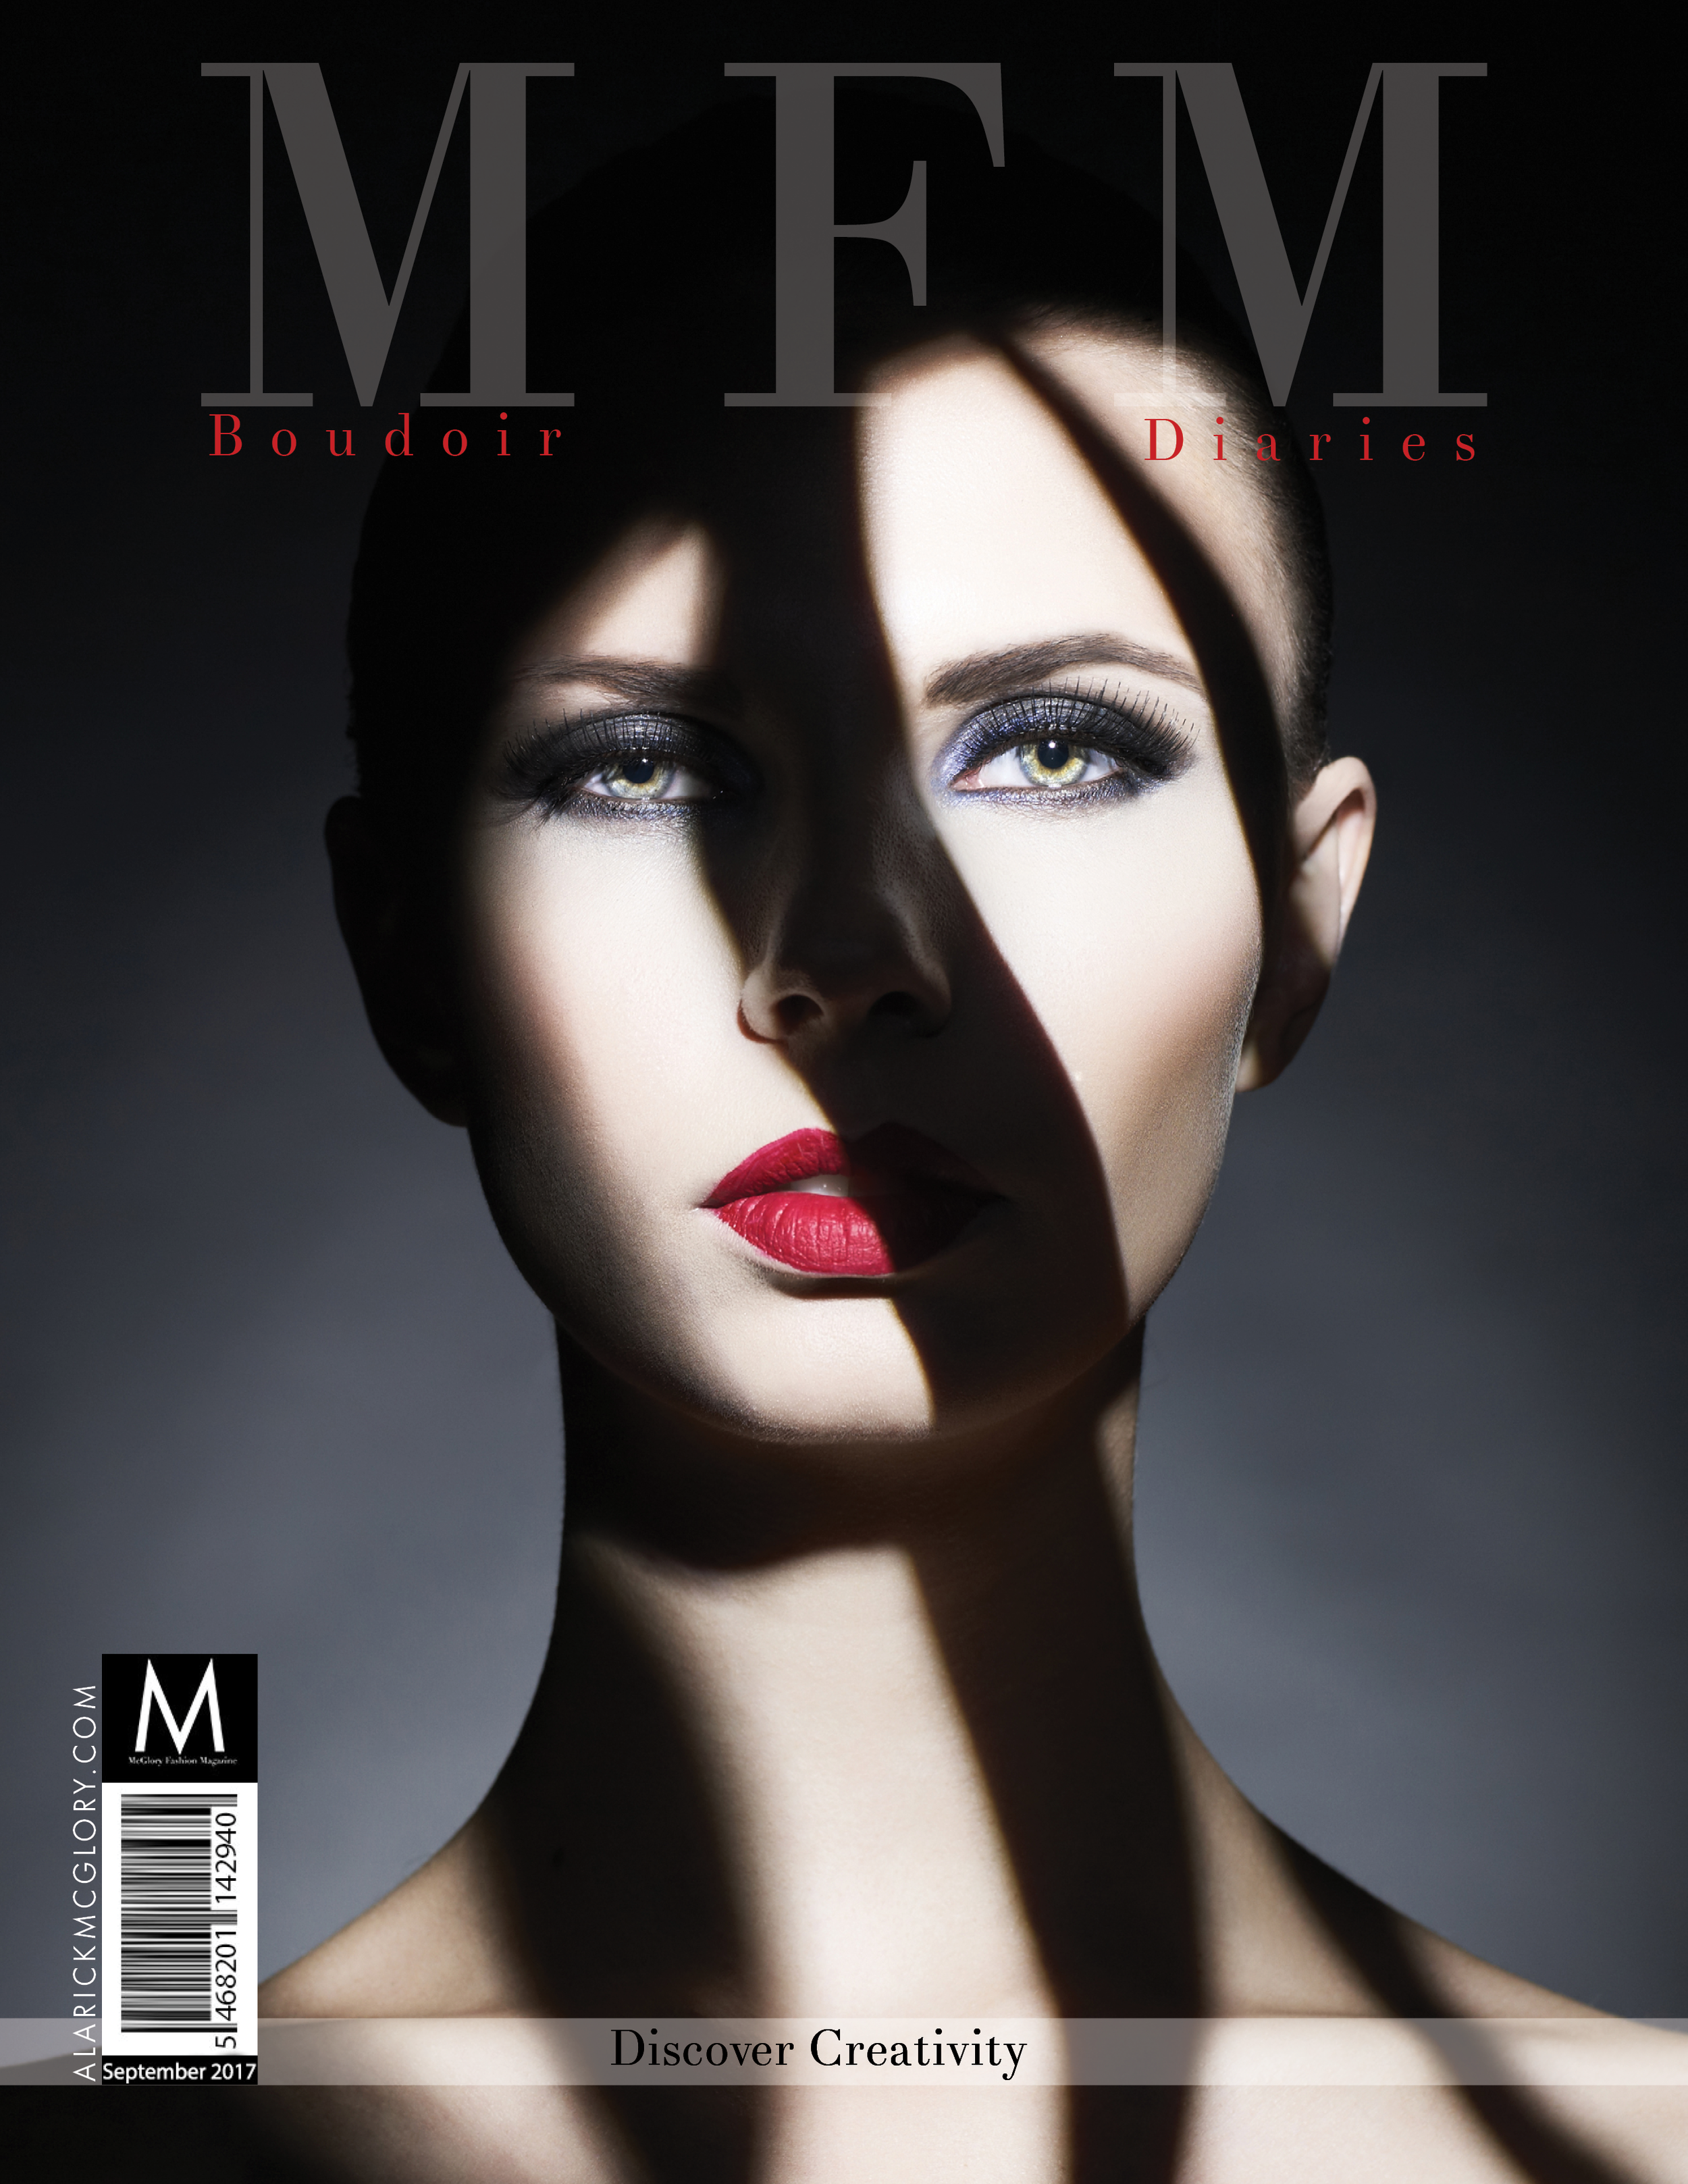 MFM first issue 7-edited 106 Part 4 space 4-4-4-4 PDF VOL 4 NEW.png